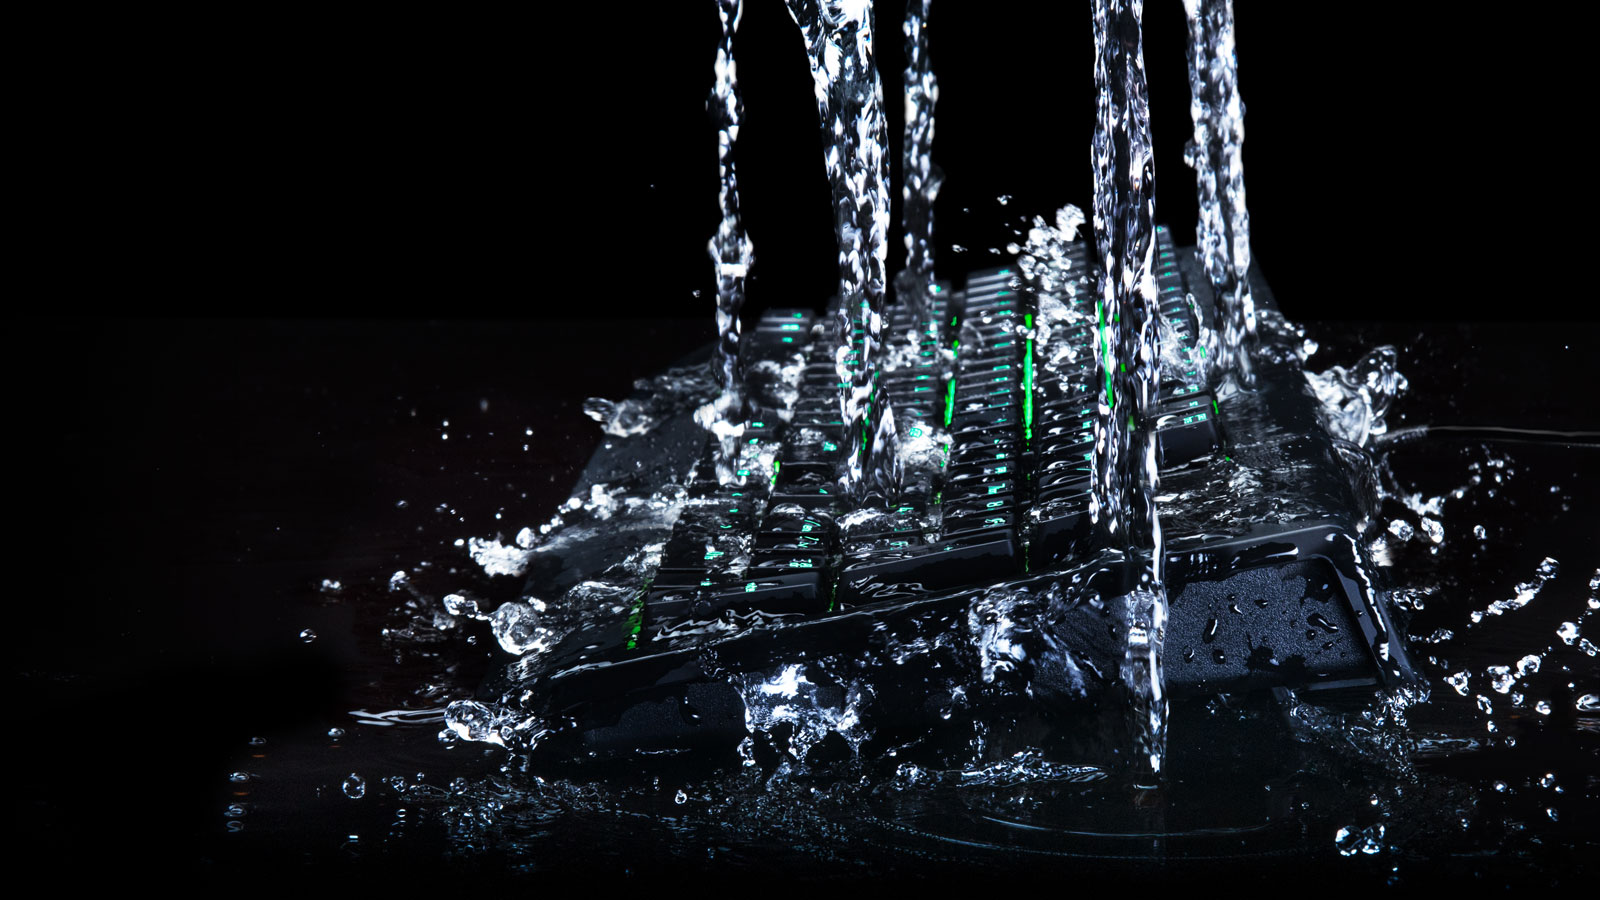 New Razer BlackWidow Ultimate water-resistant keyboard